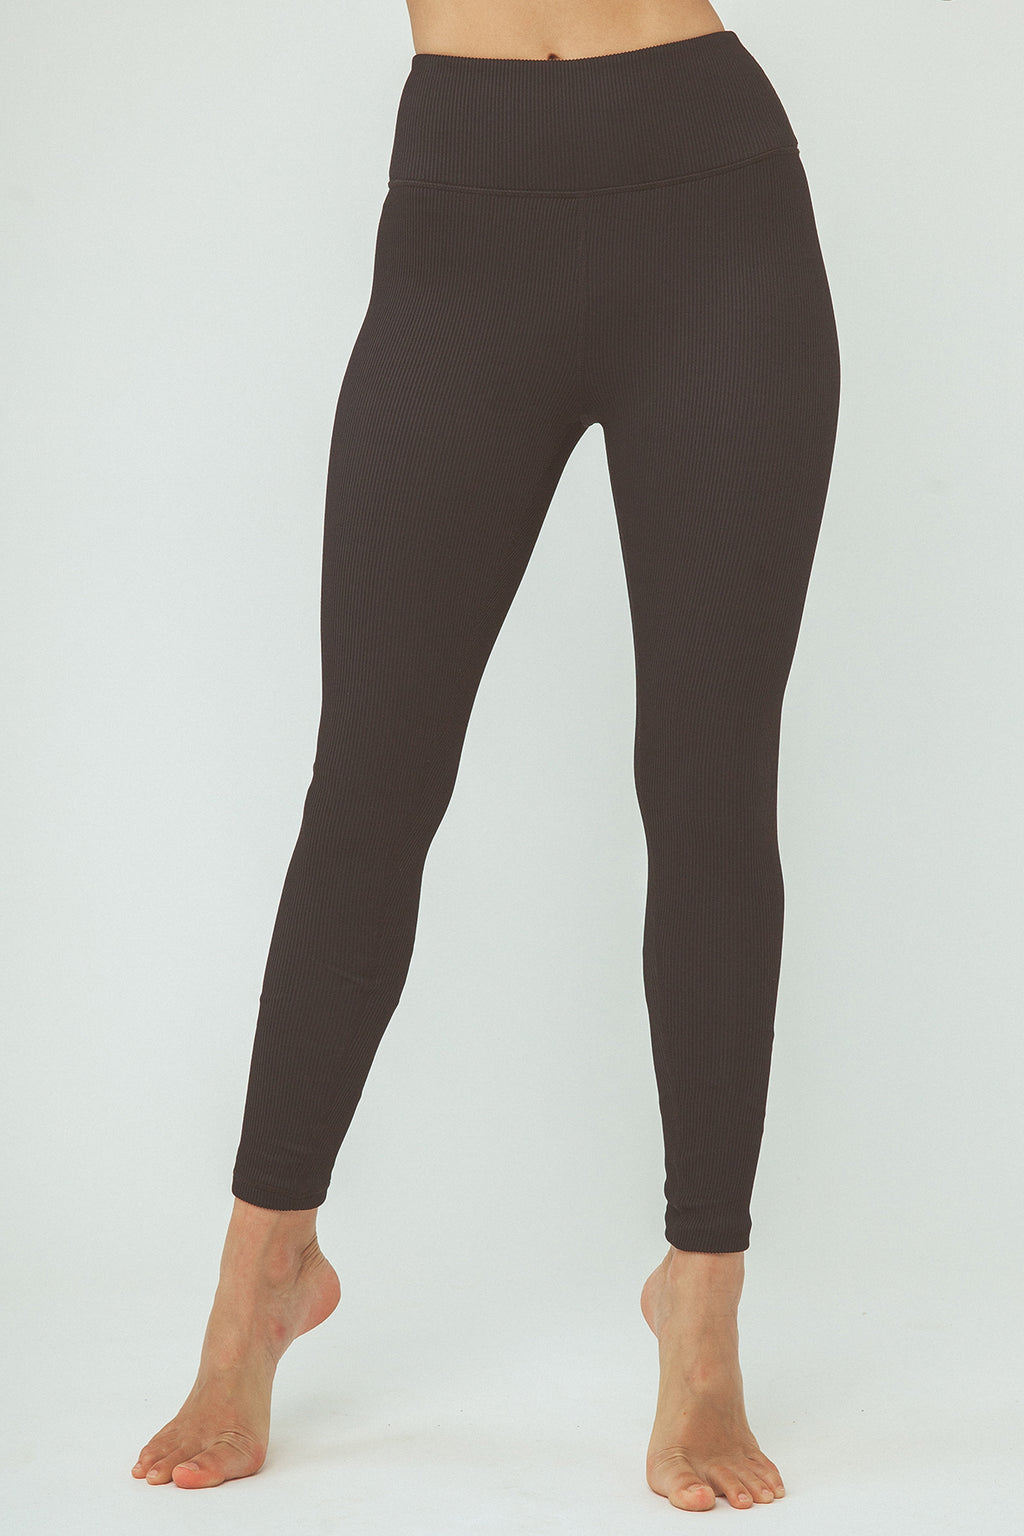 Mya Legging - Black Rib